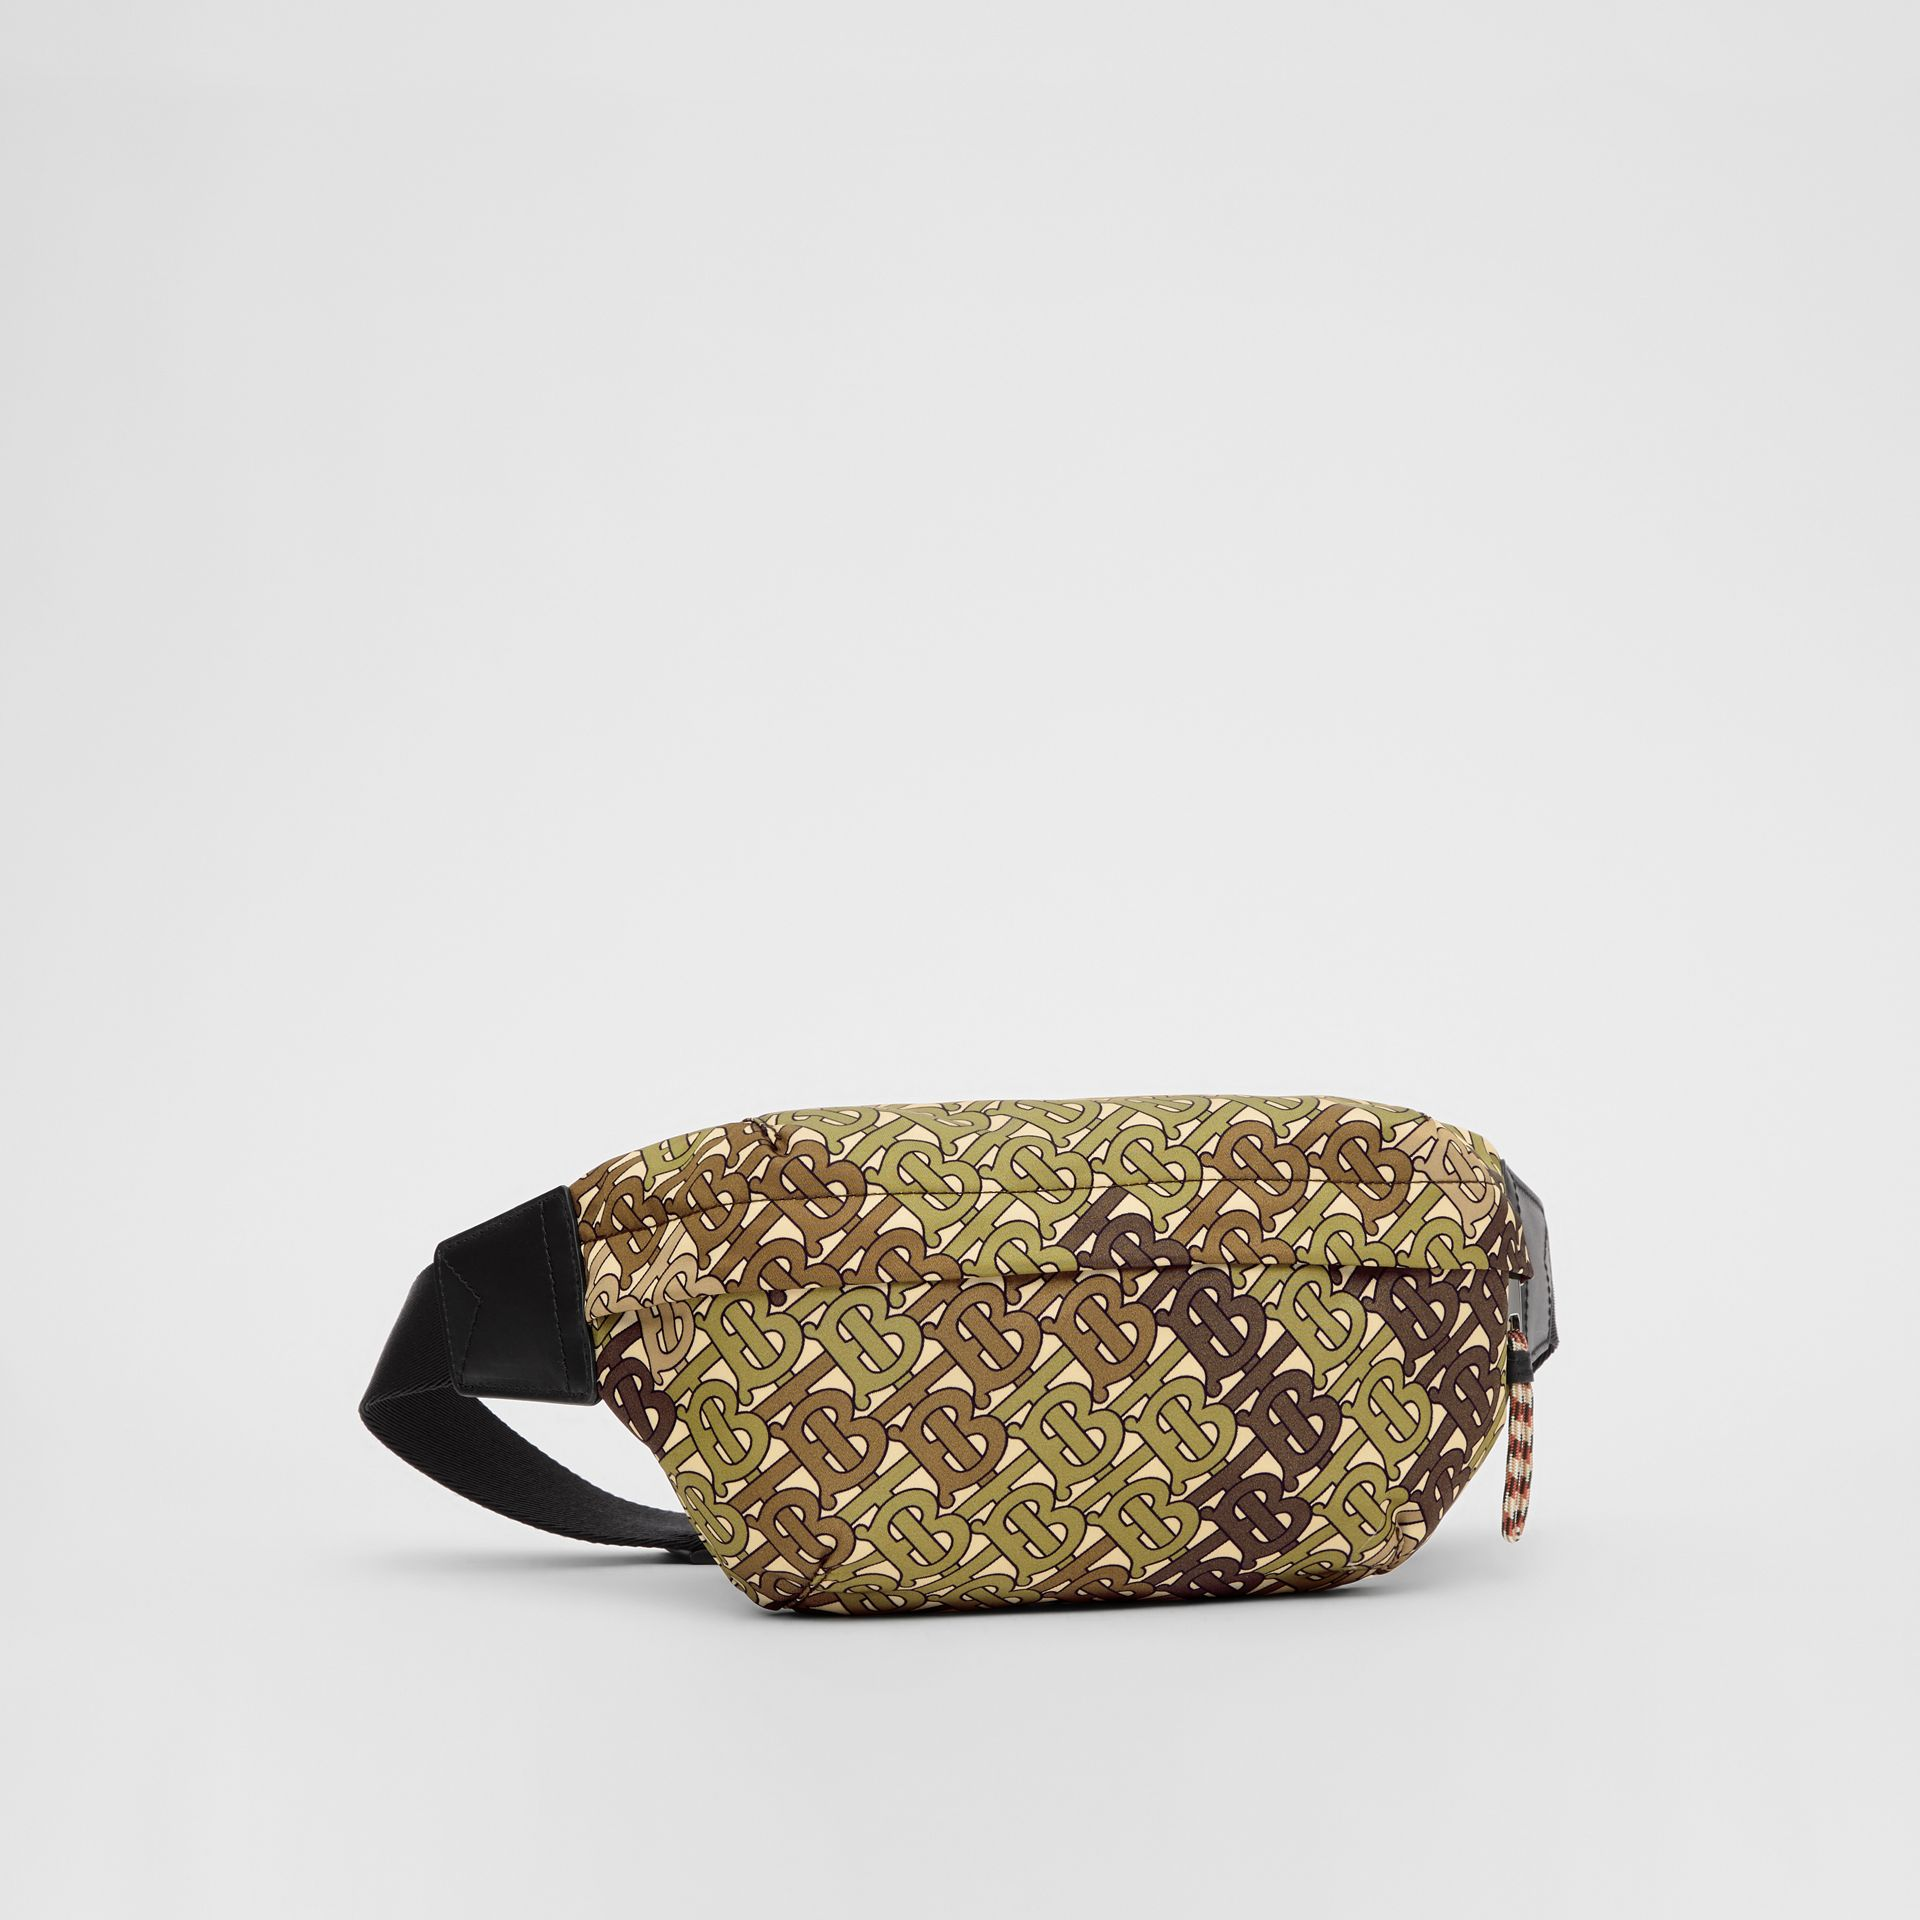 Medium Monogram Print Bum Bag in Khaki Green | Burberry Canada - gallery image 8